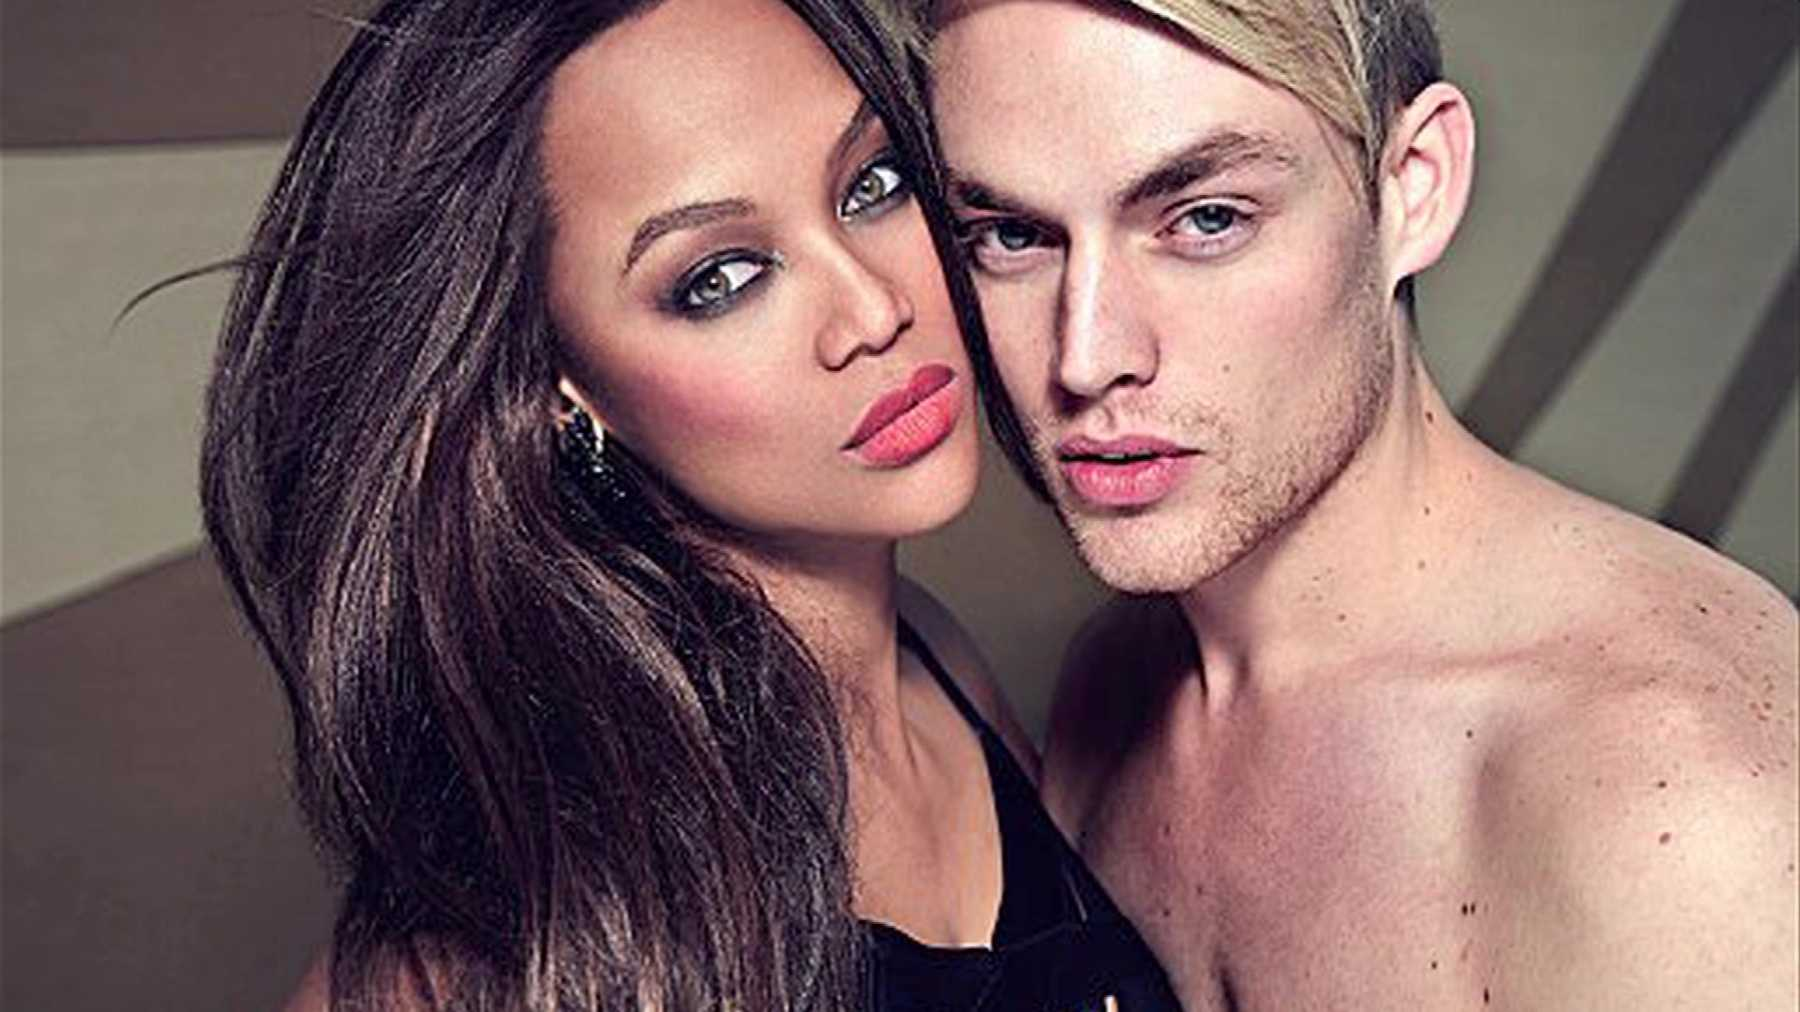 ANTM Cycle 21 Star Will Jardell Talks Tyra, Top Model And Self Confidence | Will Jardell